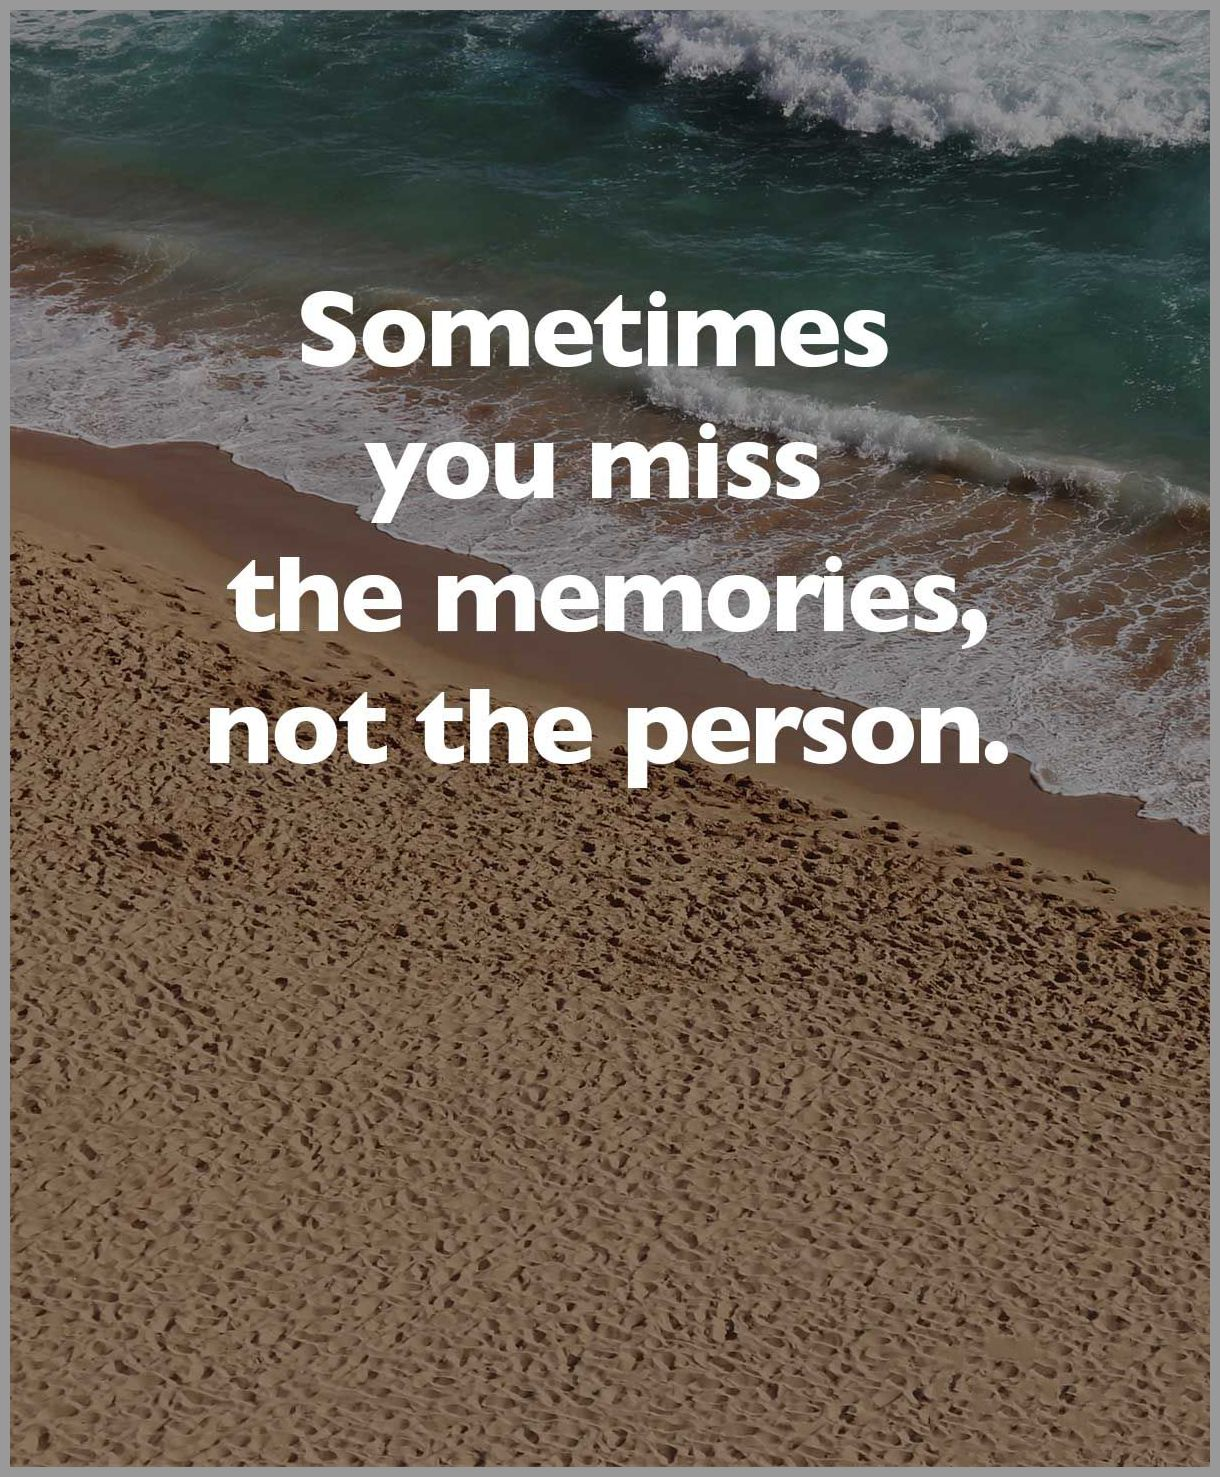 Sometimes you miss the memories not the person - Sometimes you miss the memories not the person